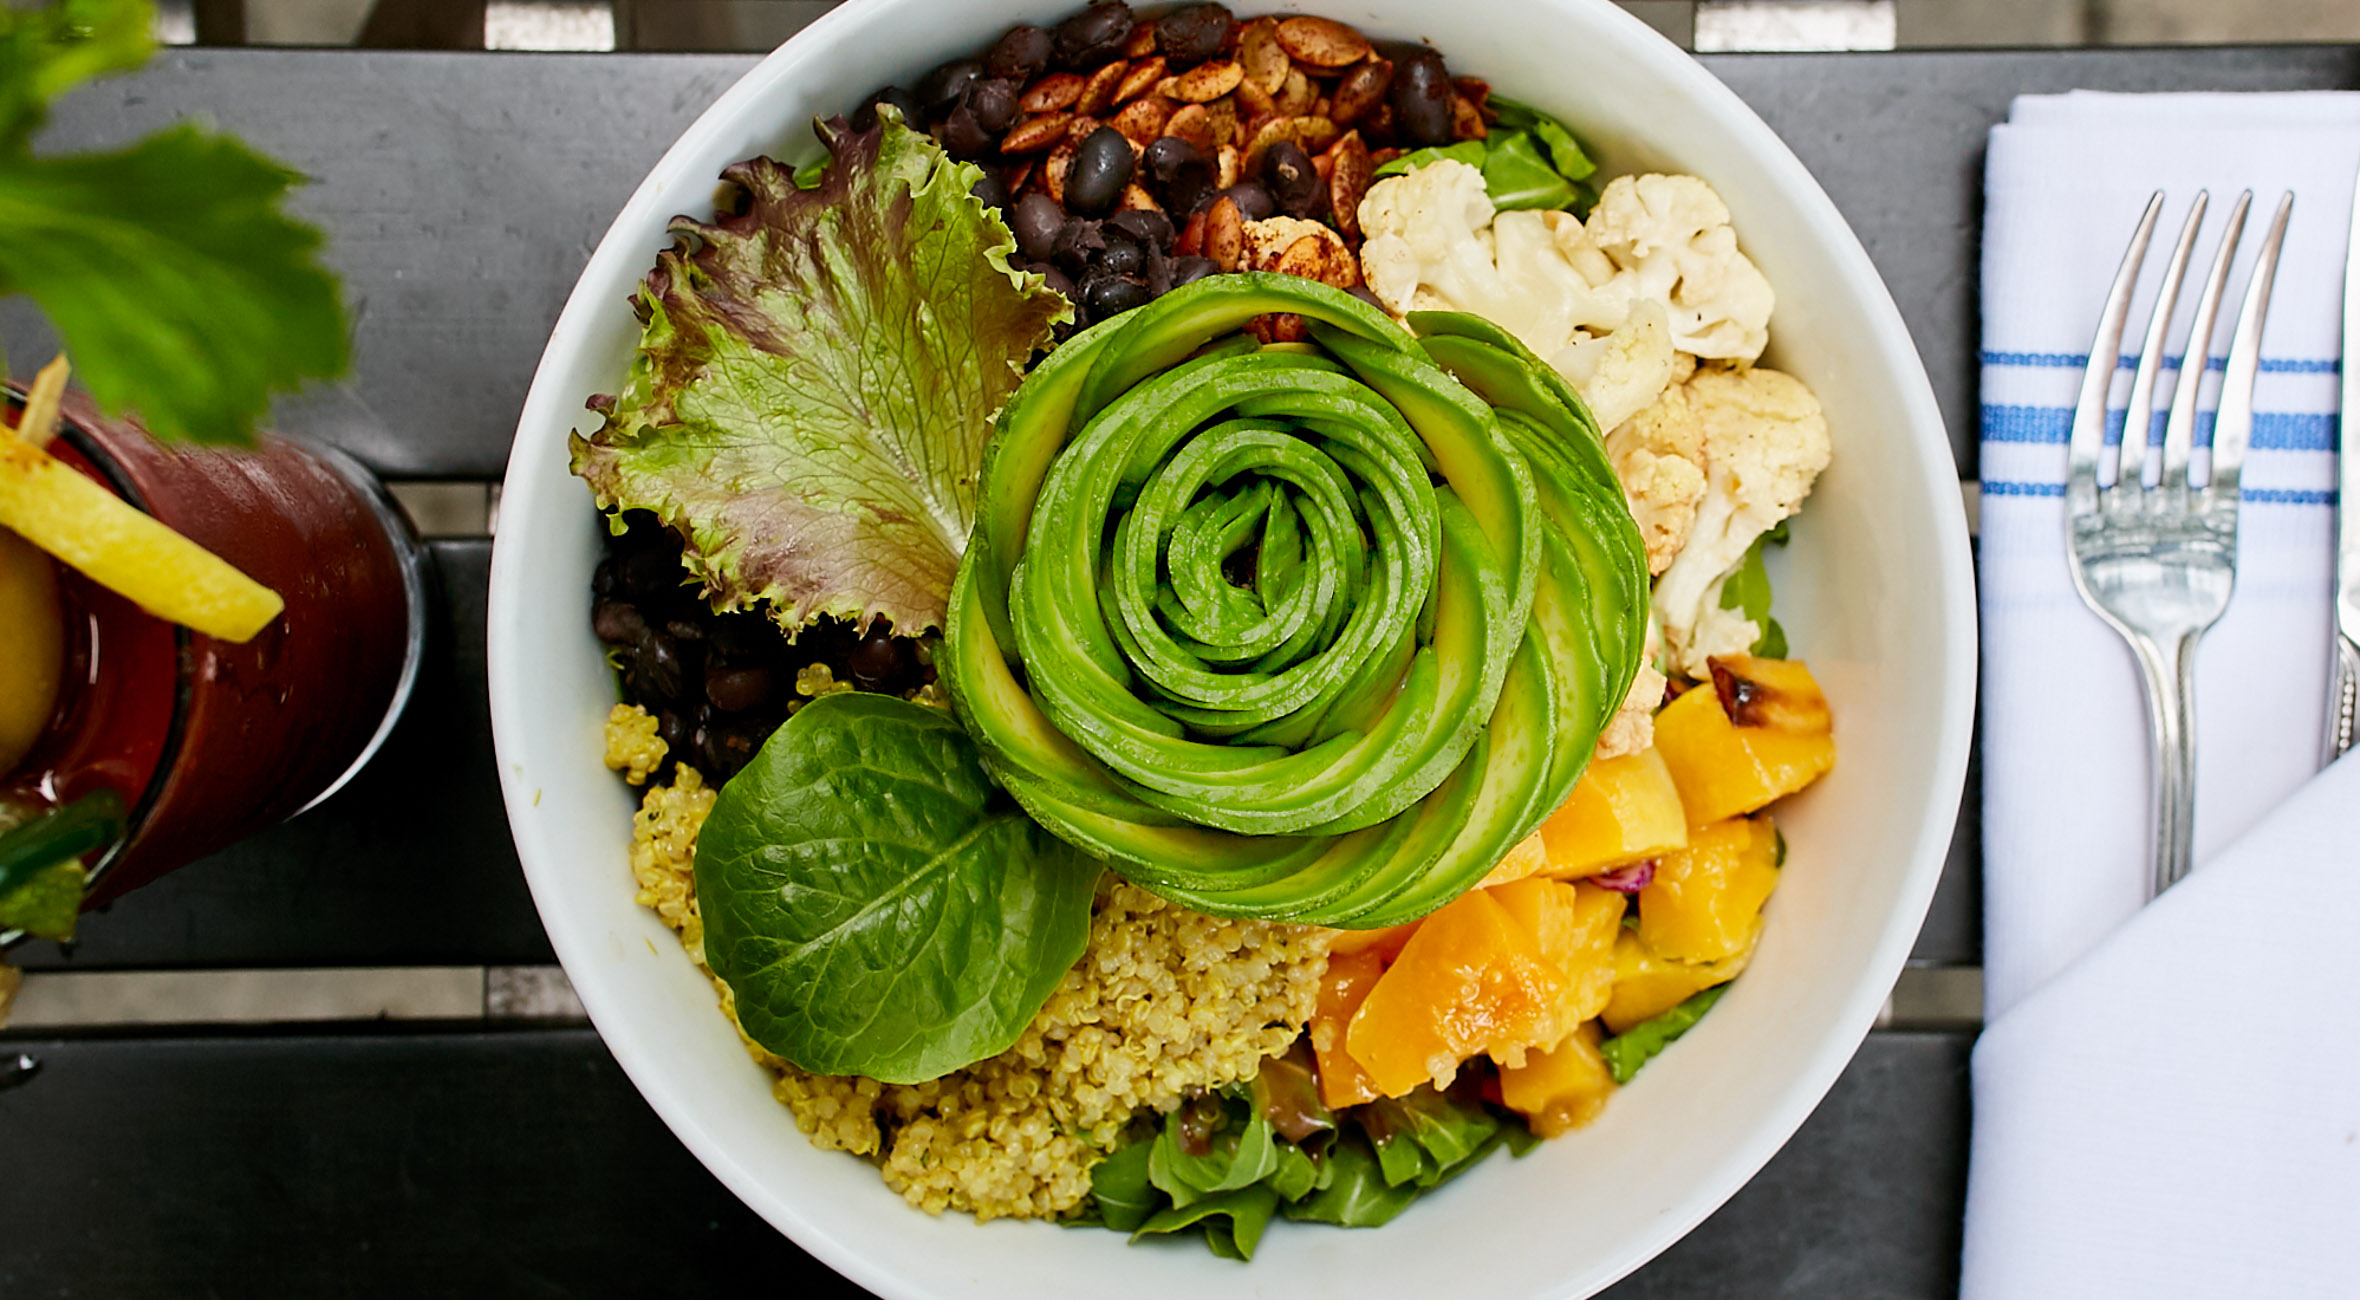 Pick Whatever You Like at Spring Natural – From Sweet Potato Waffles to Veggie Bowls, Salmon Avocado Toasts, Vegan Burgers etc.